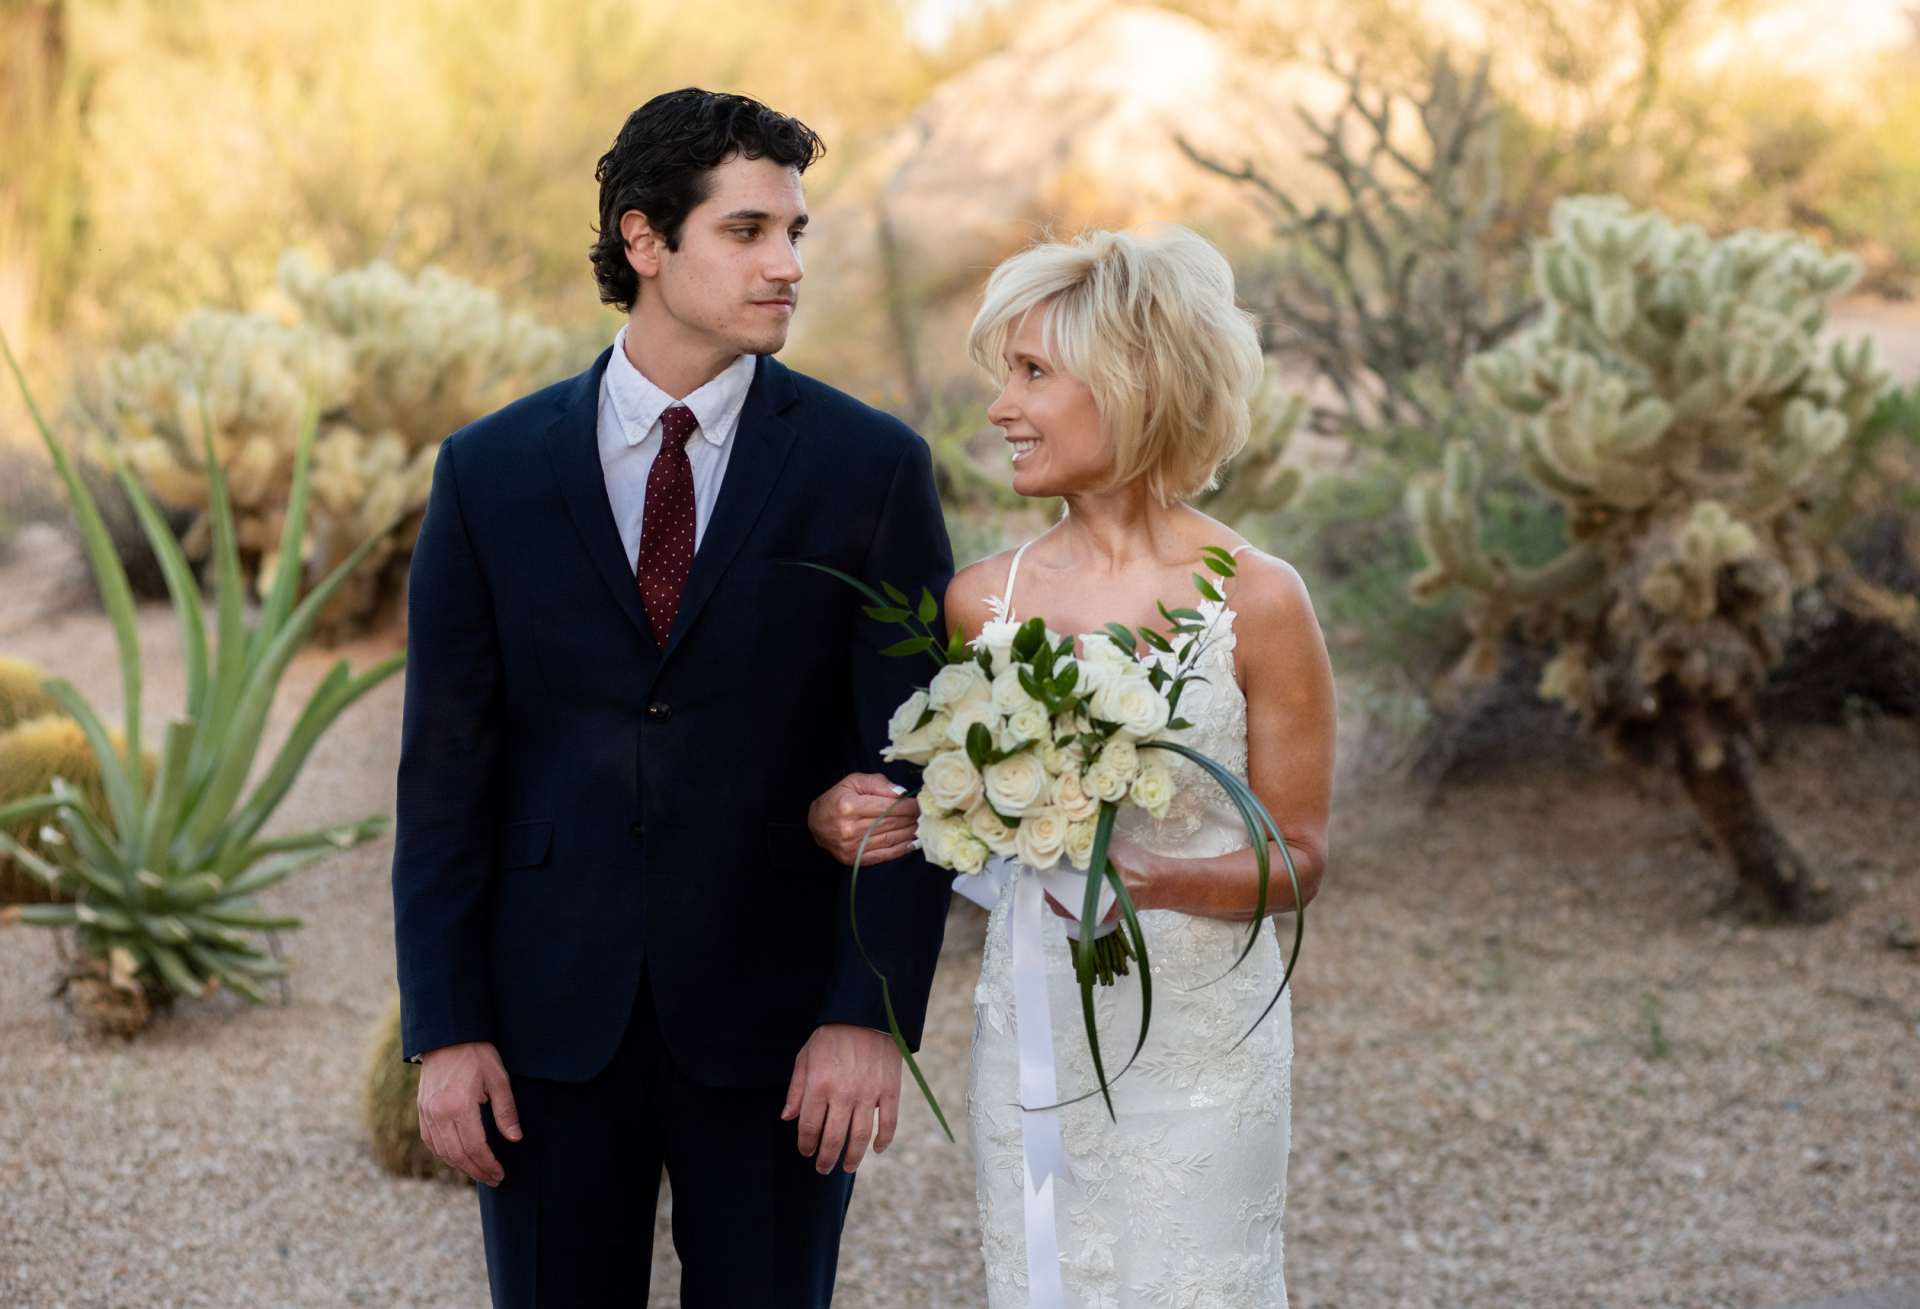 Boulders Resort & Spa Scottsdale Venue Image of AZ | The bride glances at her son with a look of anticipation